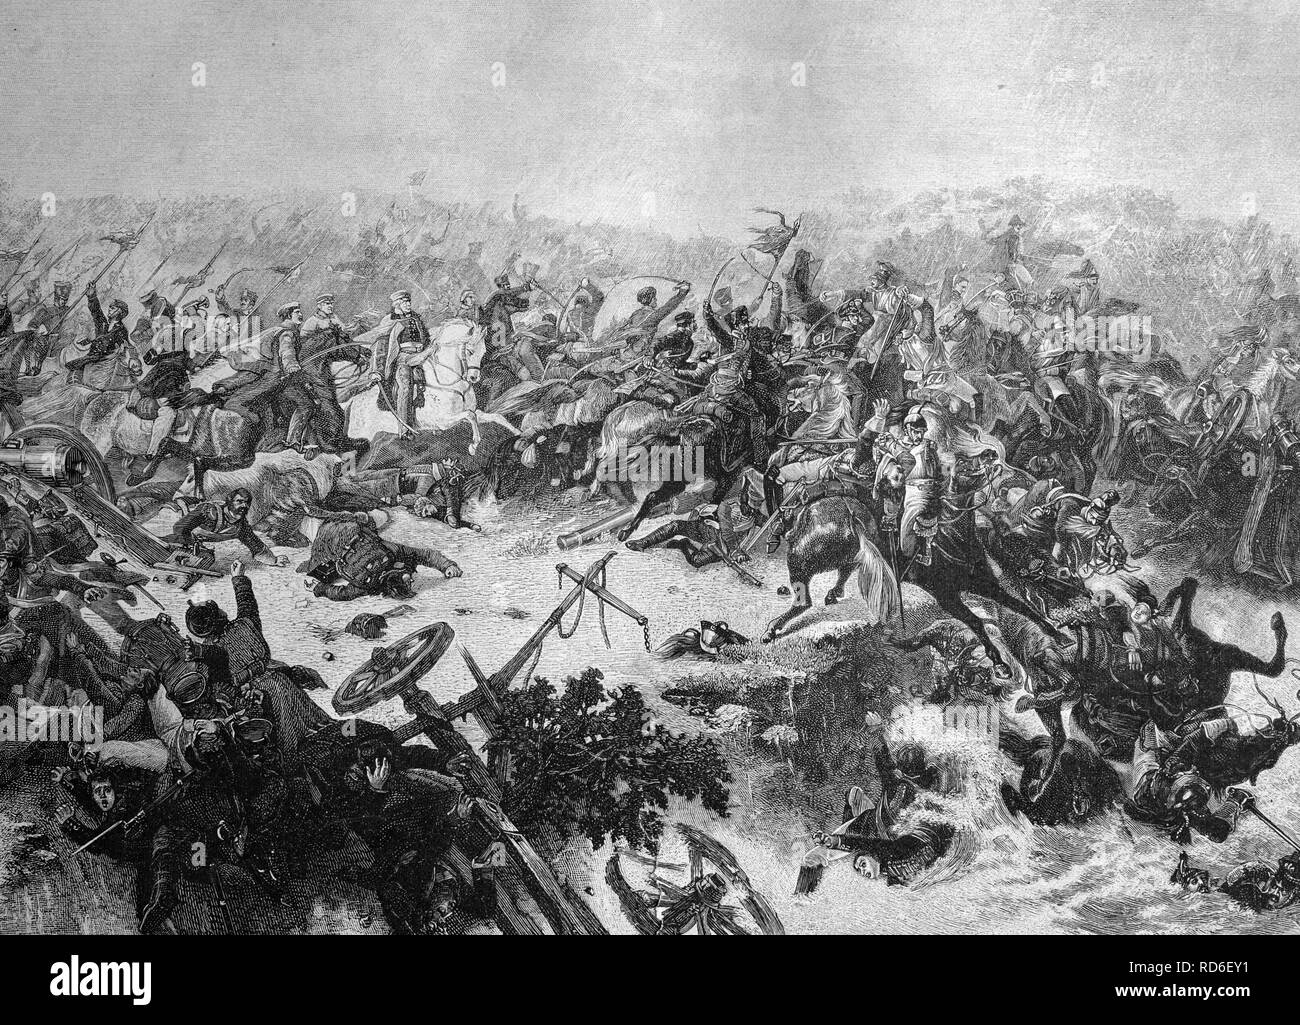 Field marshall Bluecher in the Battle of Katzbach, Lower Silesia, Poland, historical illustration circa 1893 - Stock Image